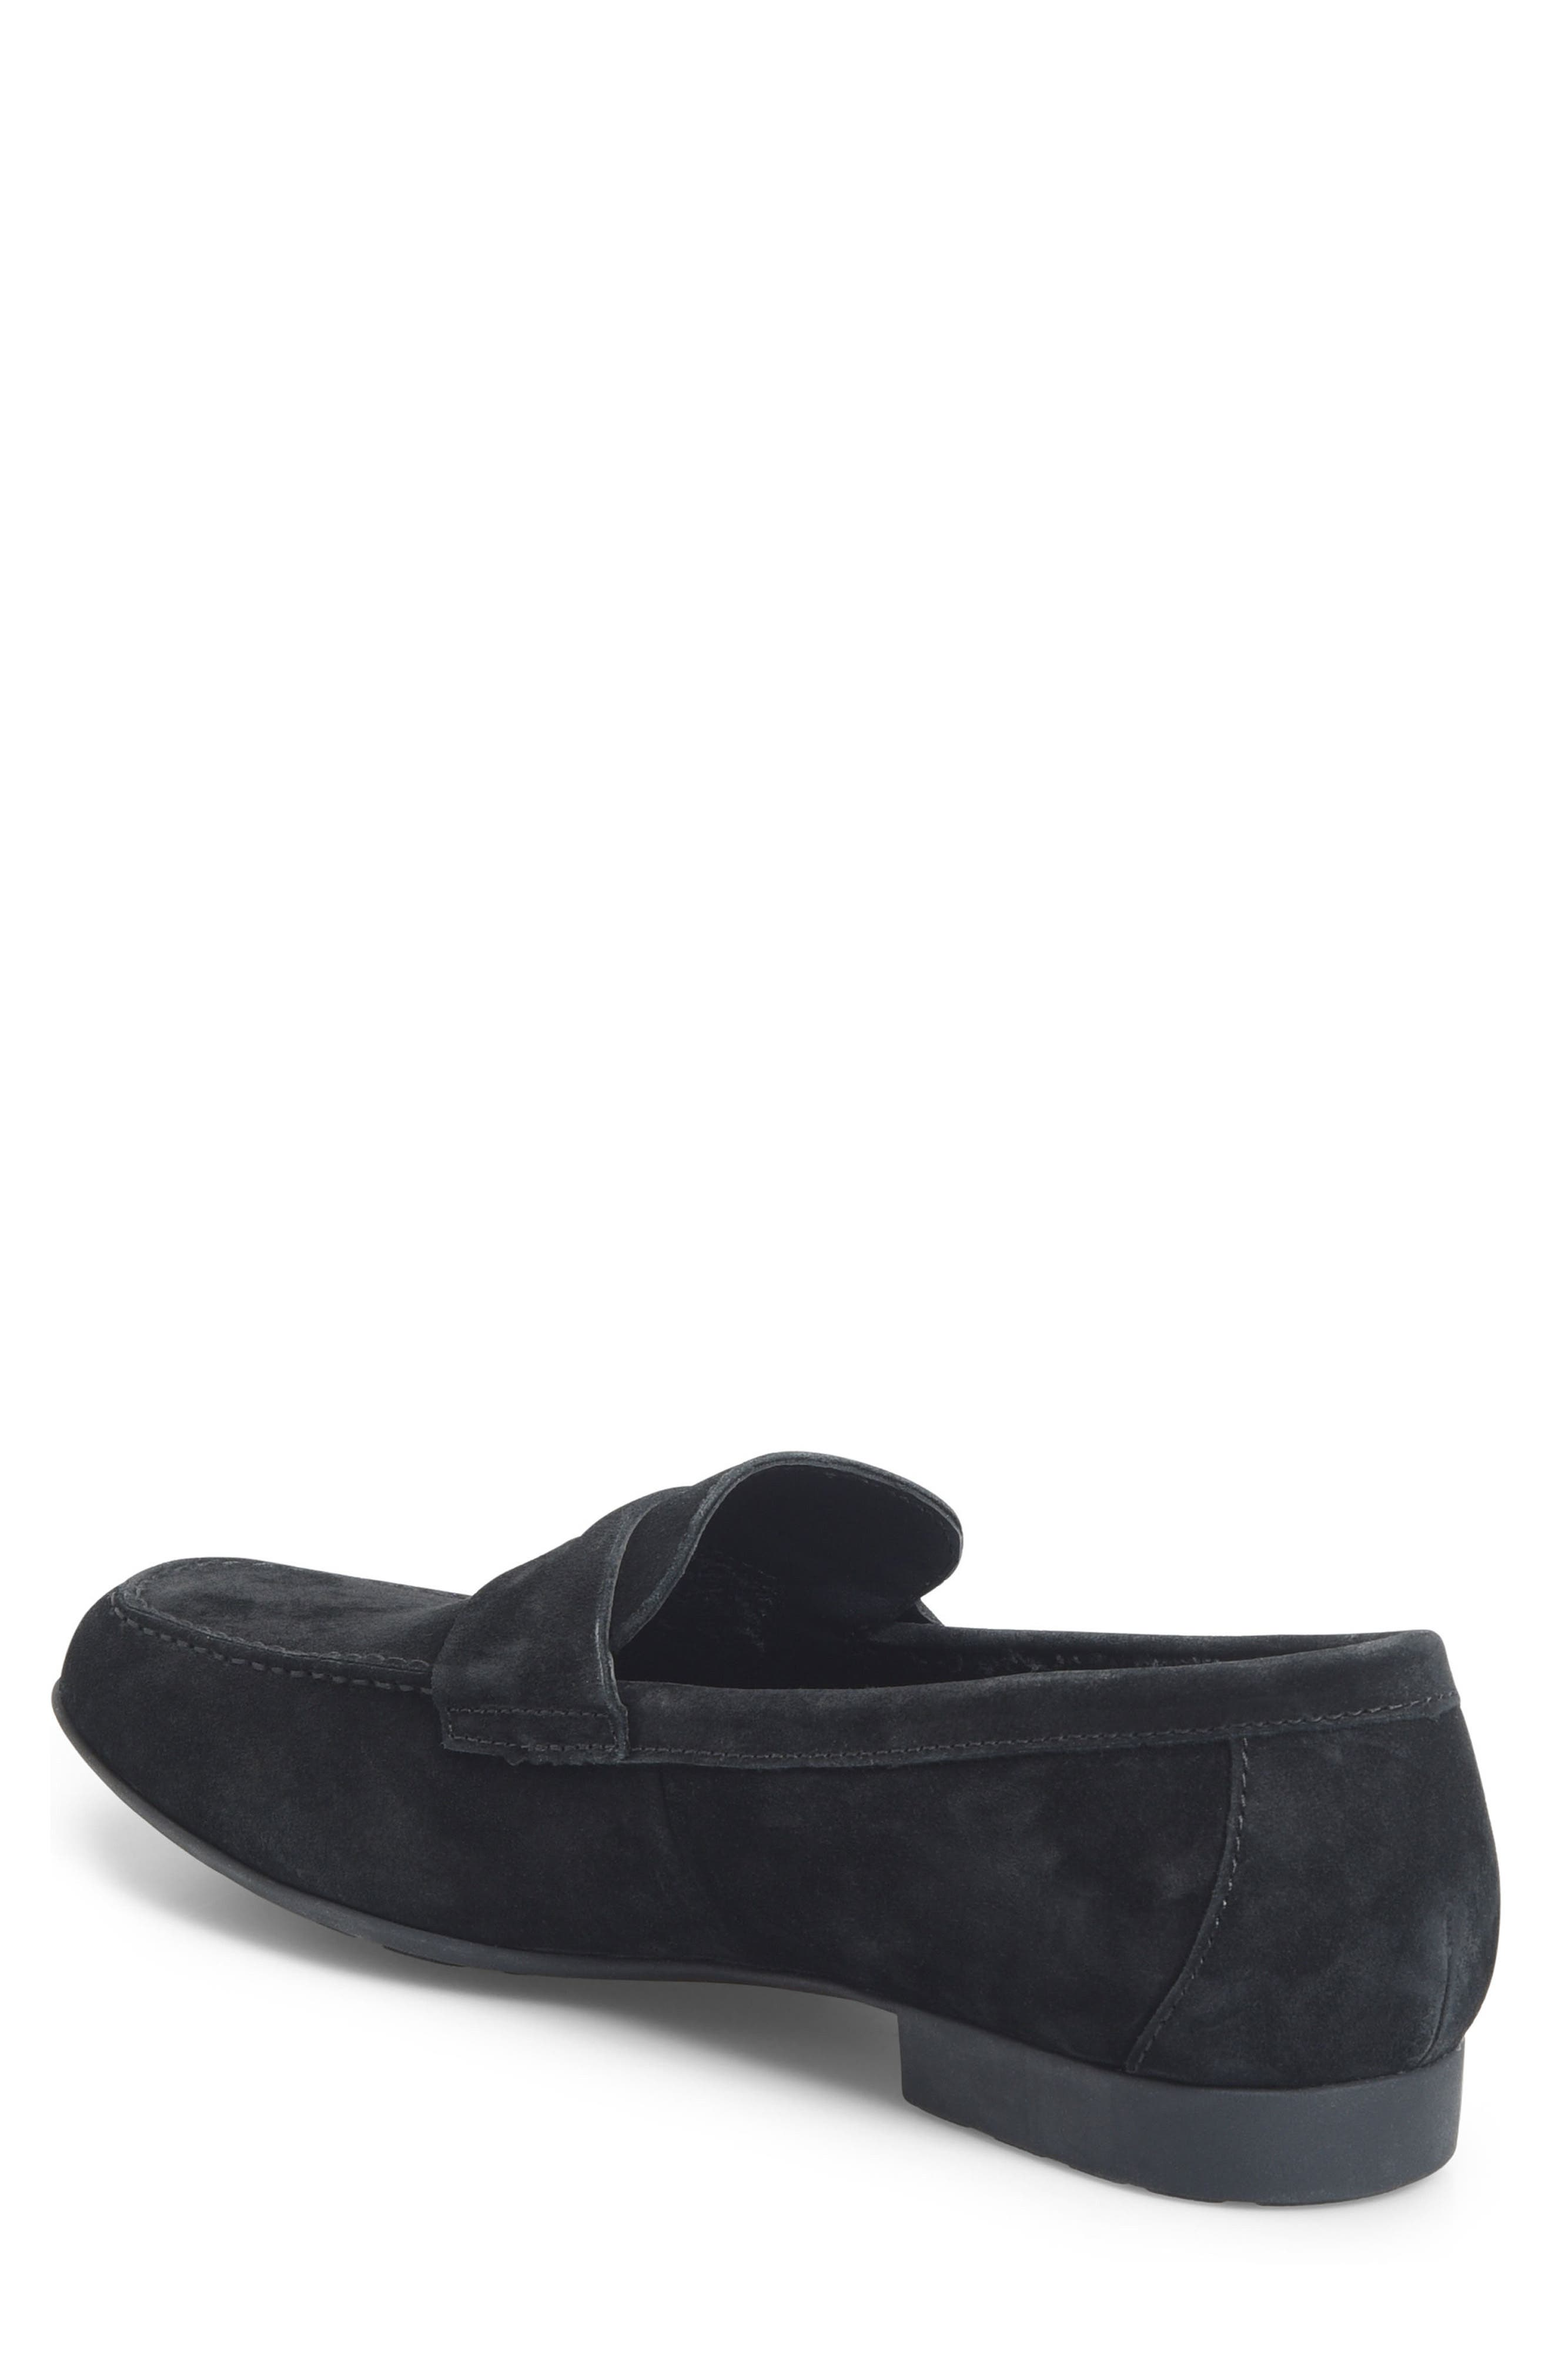 'Dave' Penny Loafer,                             Alternate thumbnail 2, color,                             003